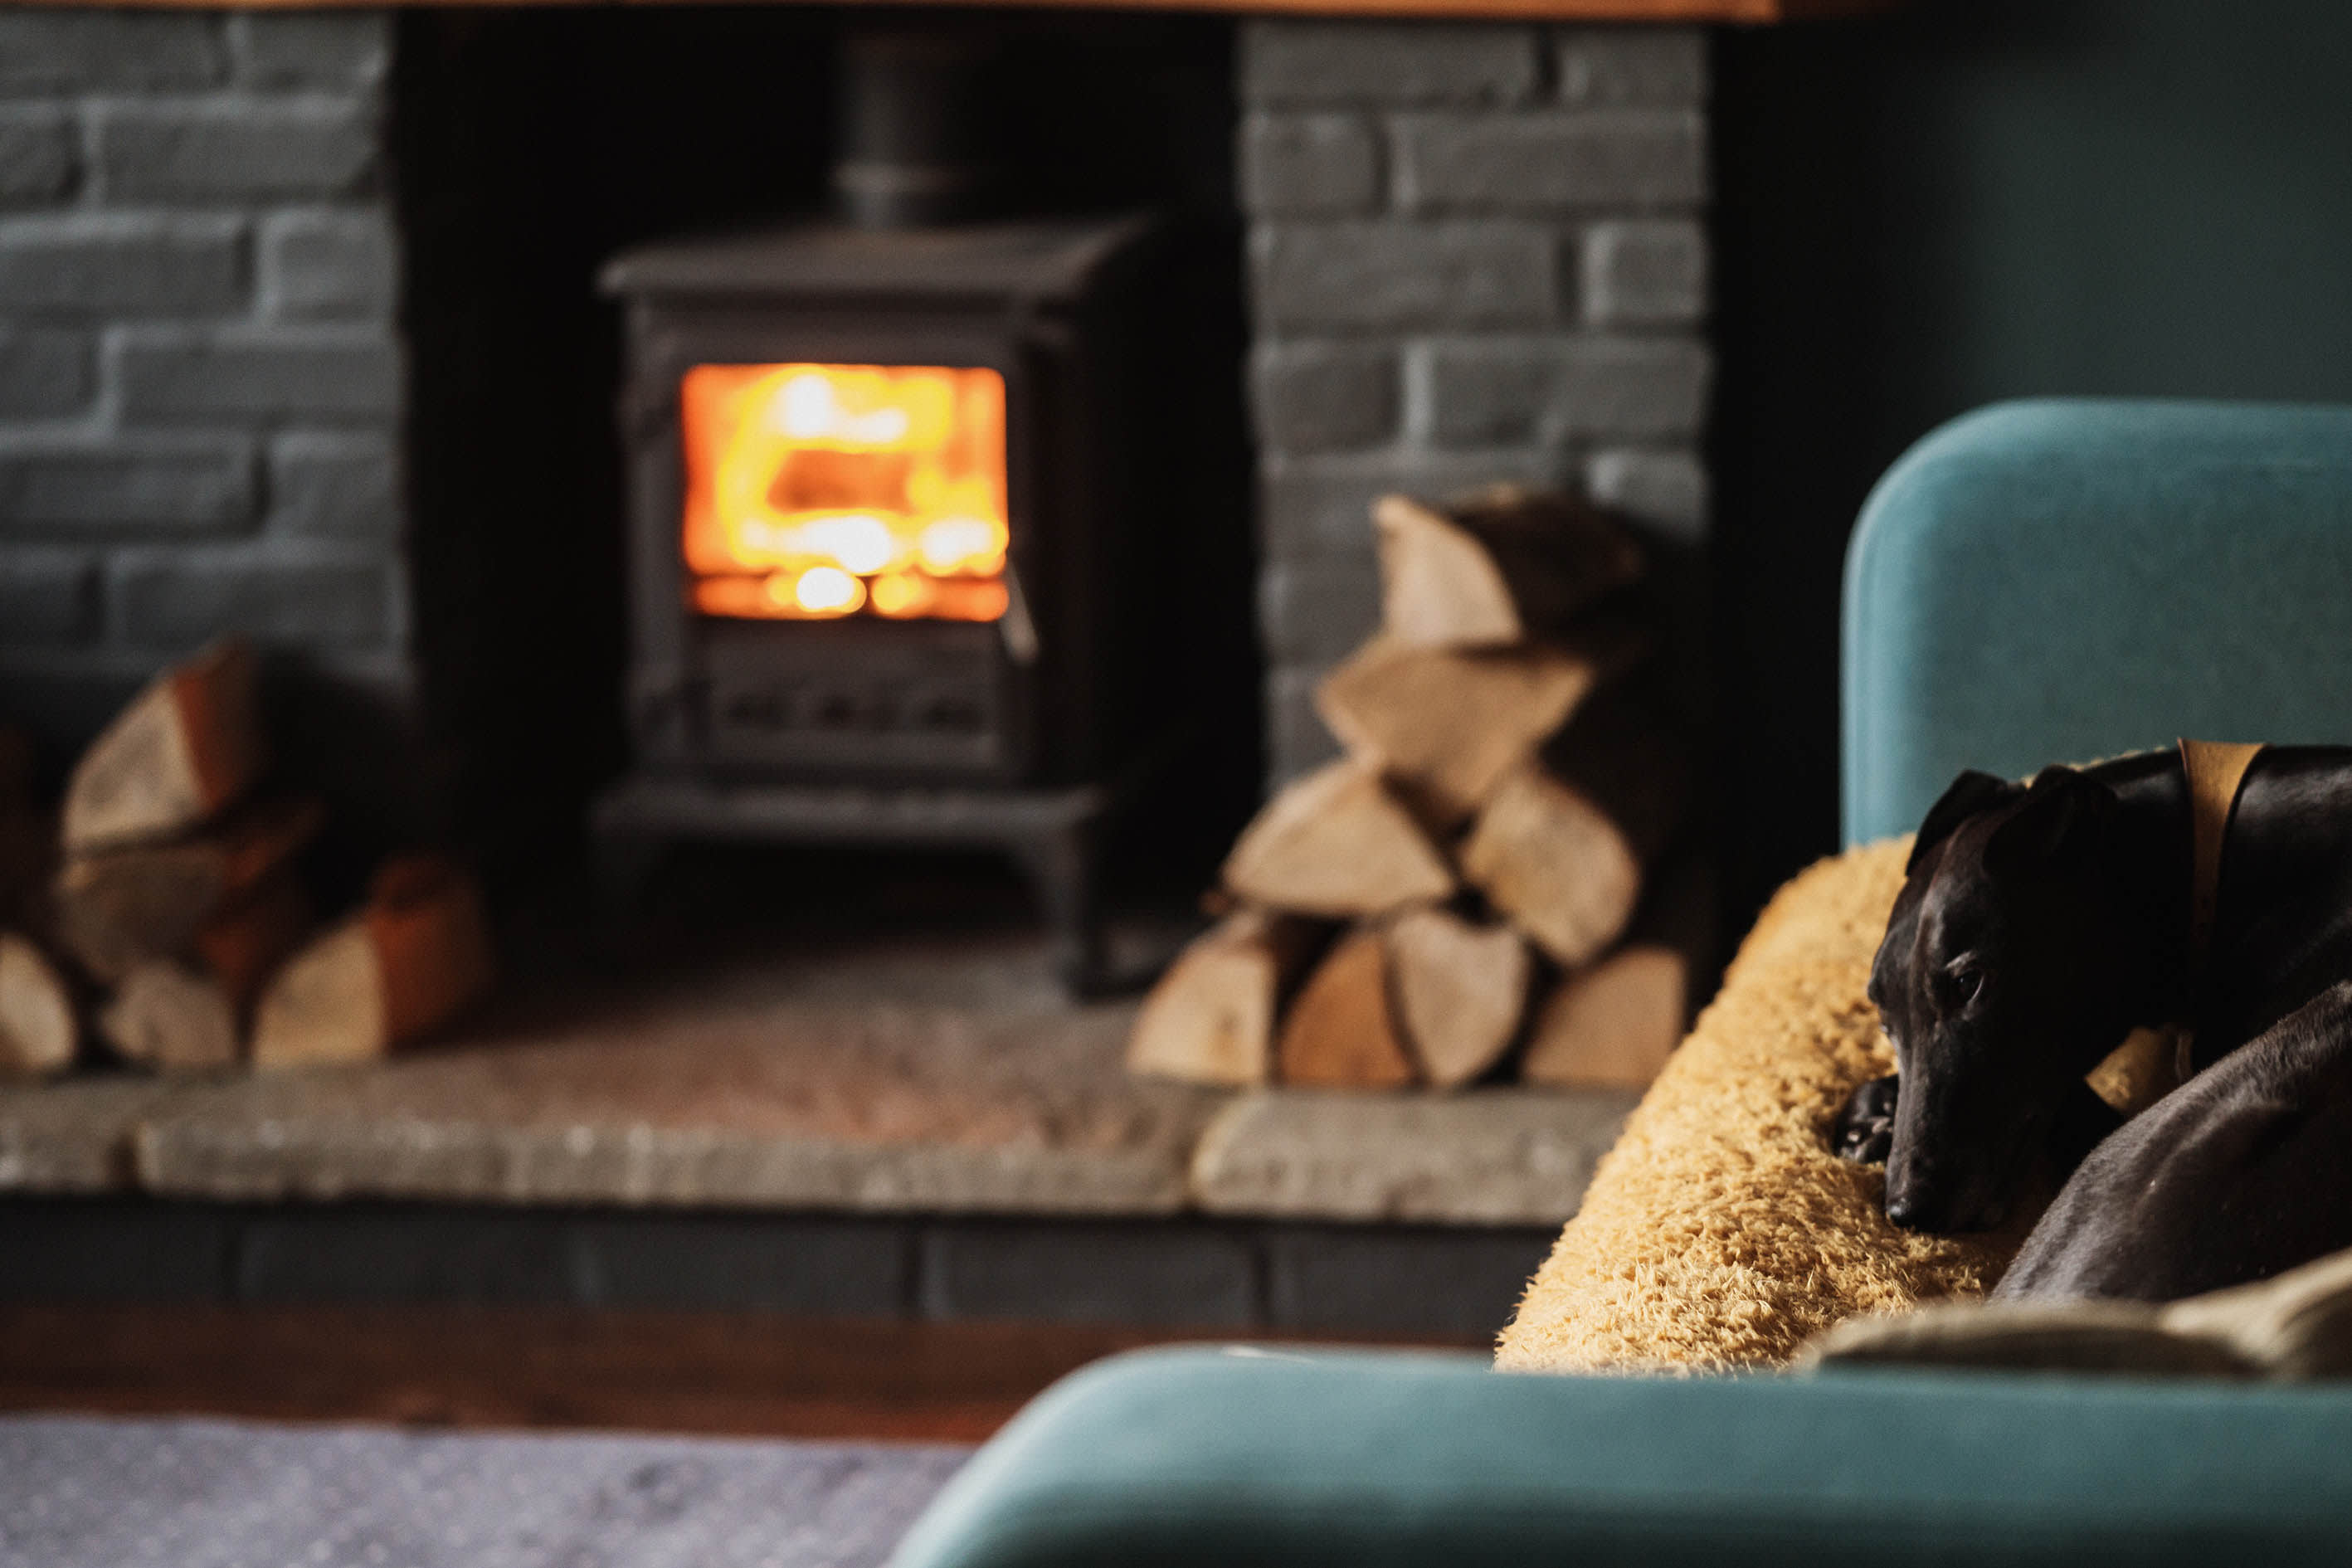 Preparing your home for the remaining winter months